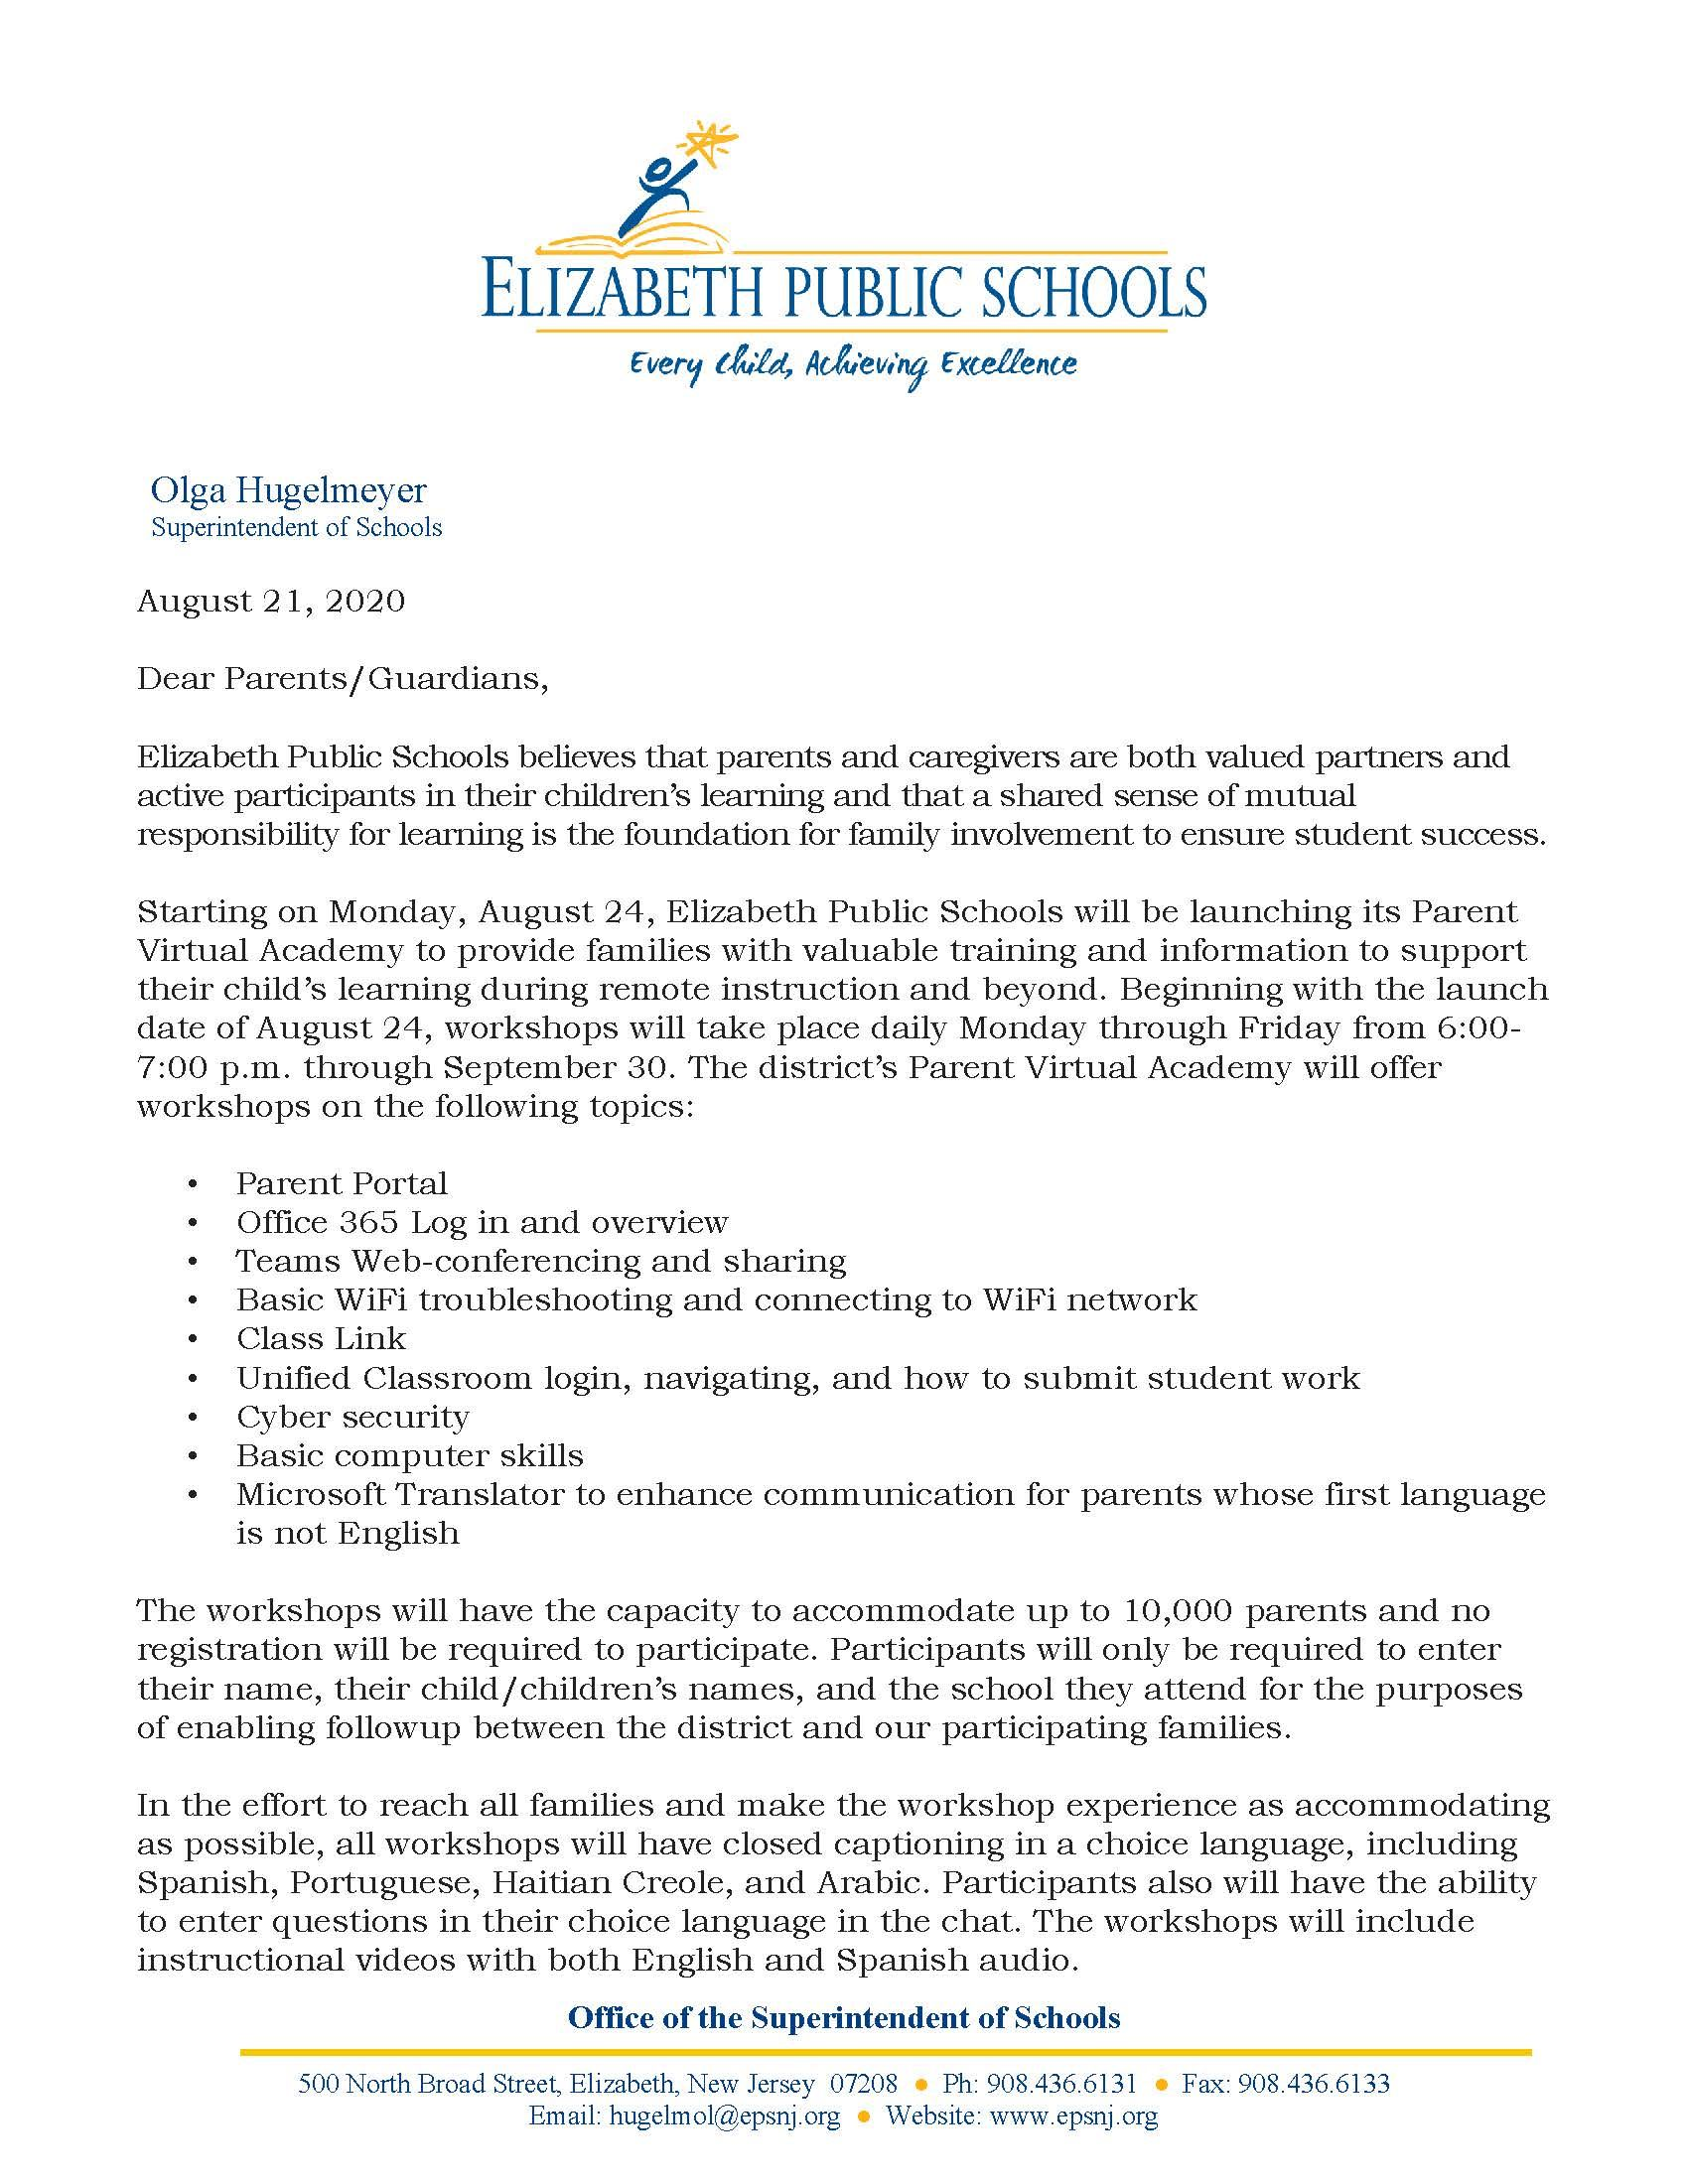 Letter to Parents- Guardians- Information on Parent Virtual Academy- 8-20-20